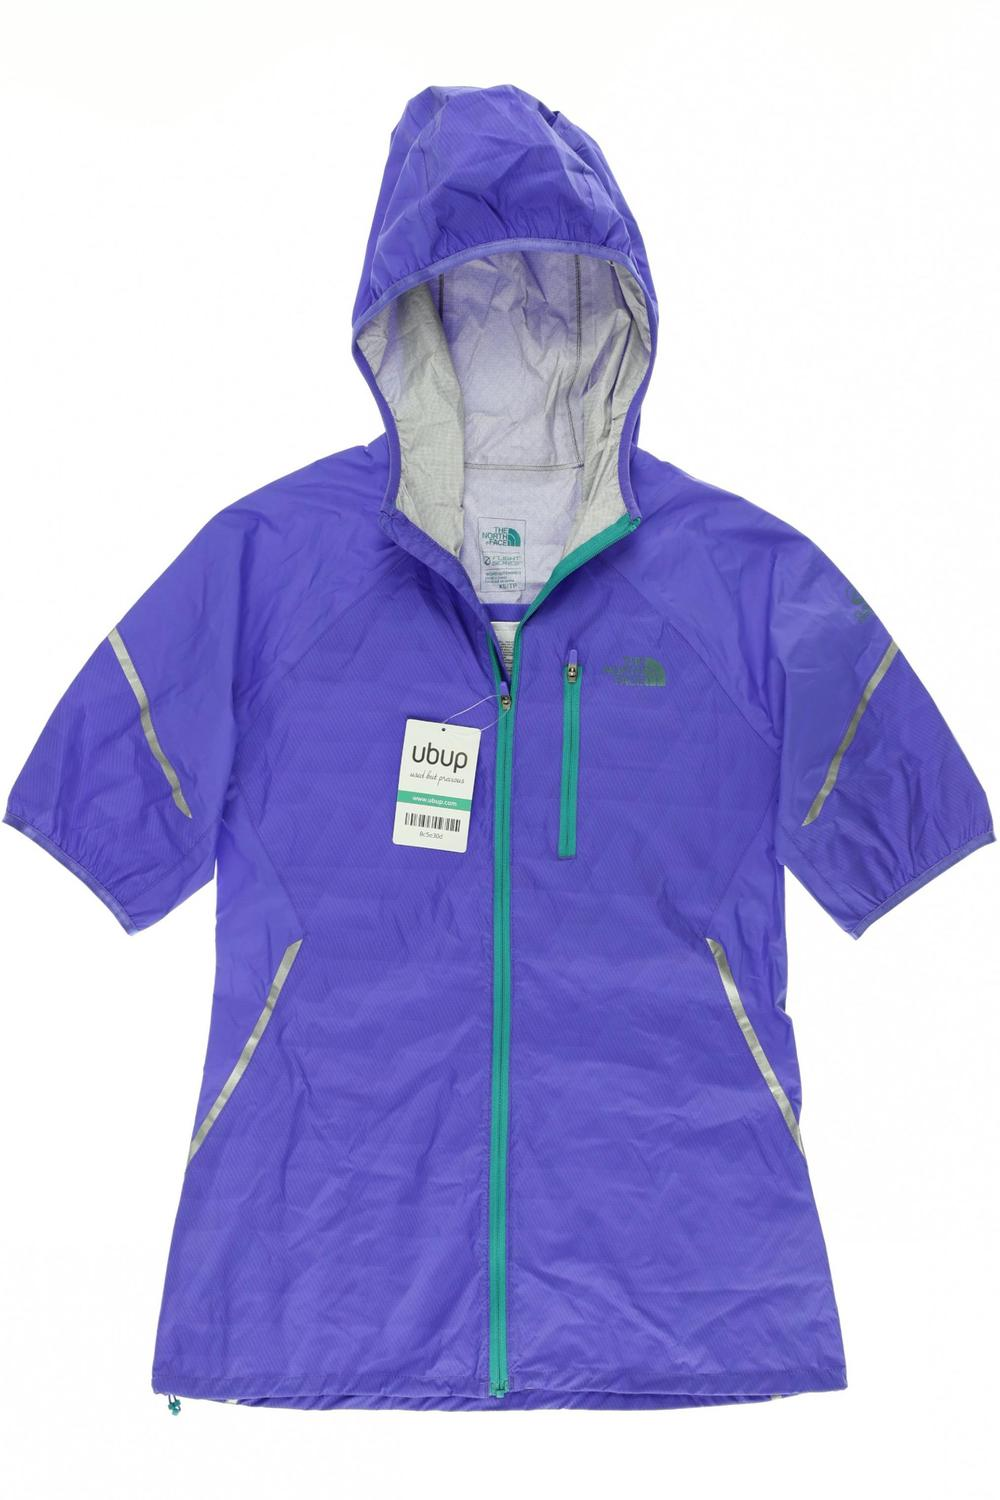 ubup the north face damen jacke int xs second hand kaufen. Black Bedroom Furniture Sets. Home Design Ideas